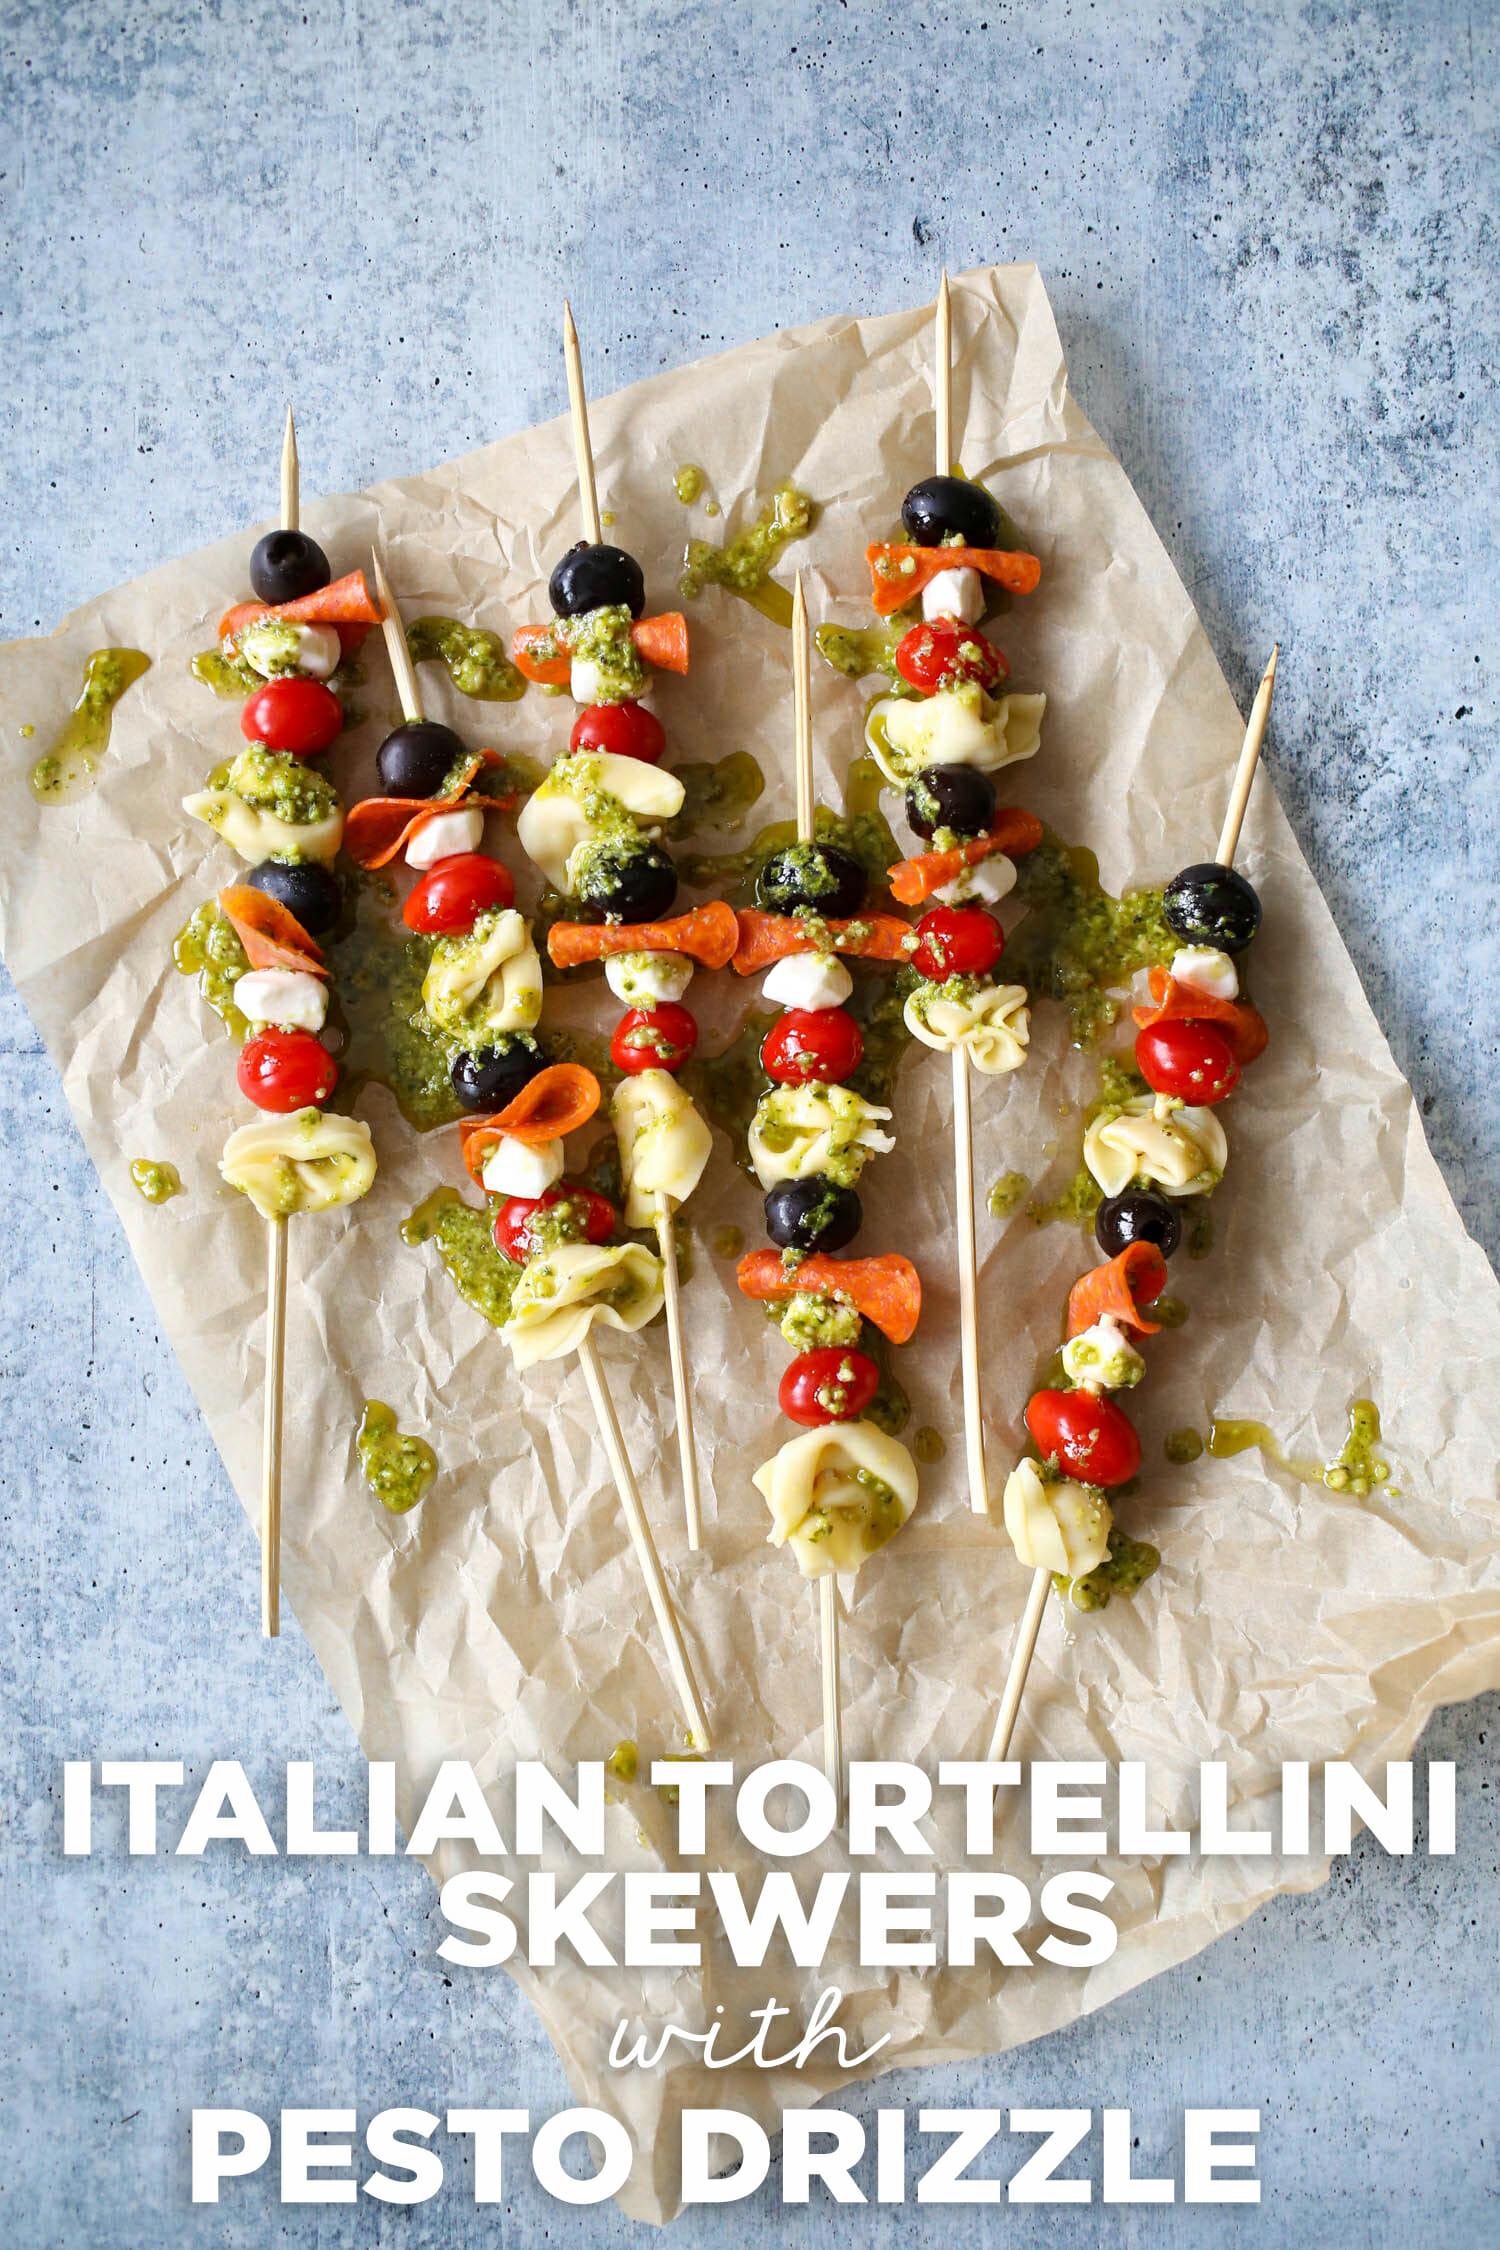 Italian Tortellini Skewers with Pesto Drizzle from Our Best Bites